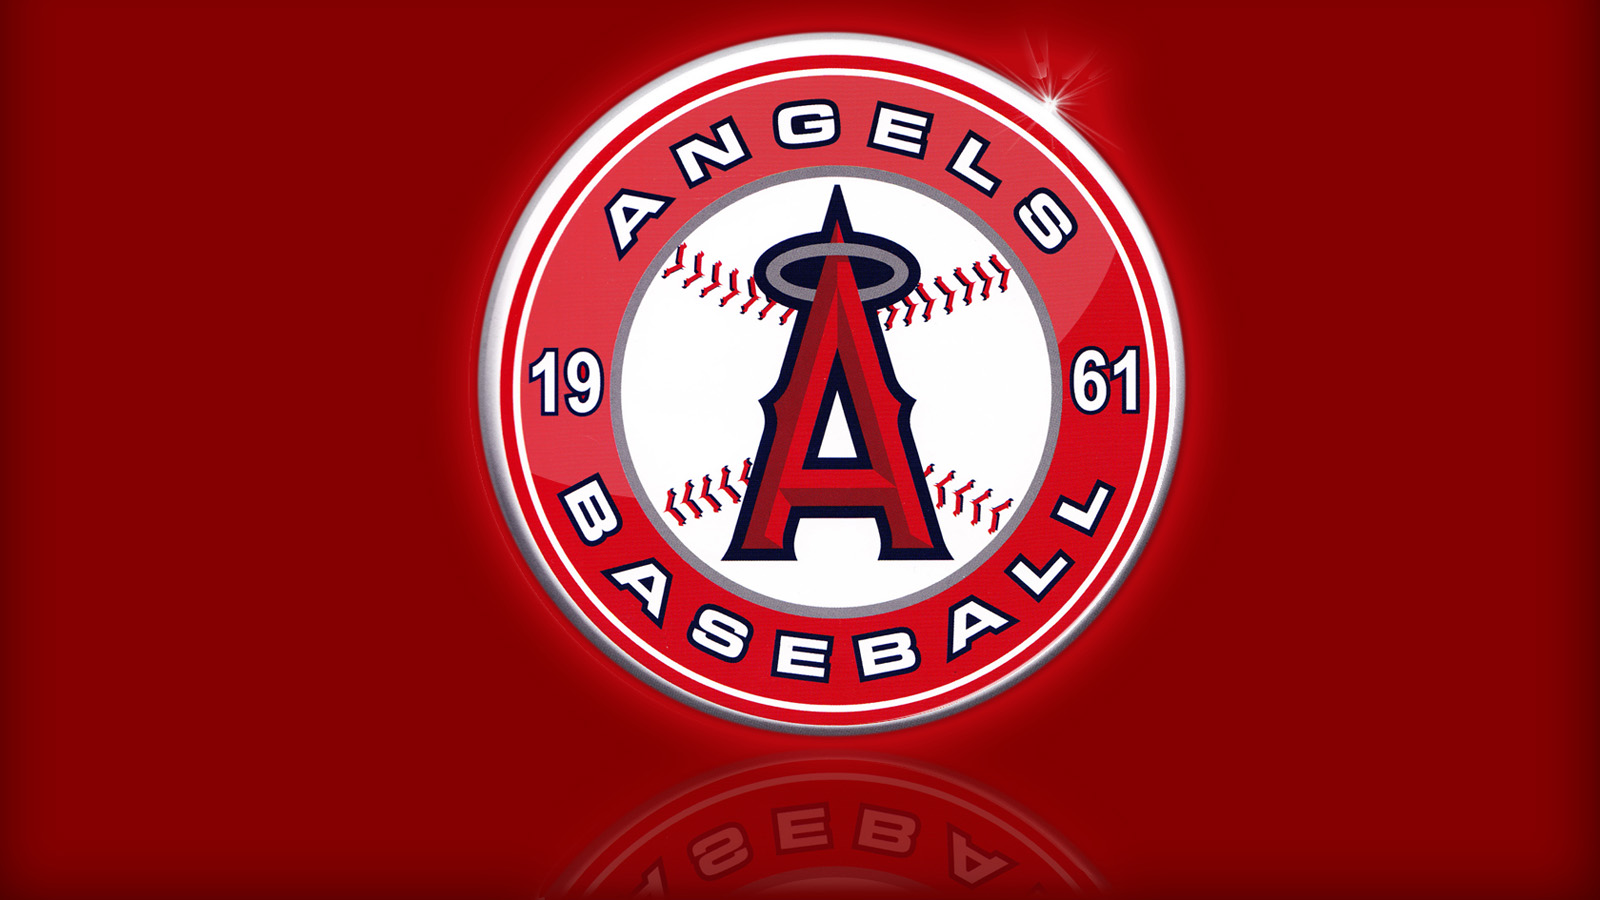 Angeles Angels of Anaheim wallpapers Los Angeles Angels of Anaheim 1600x900